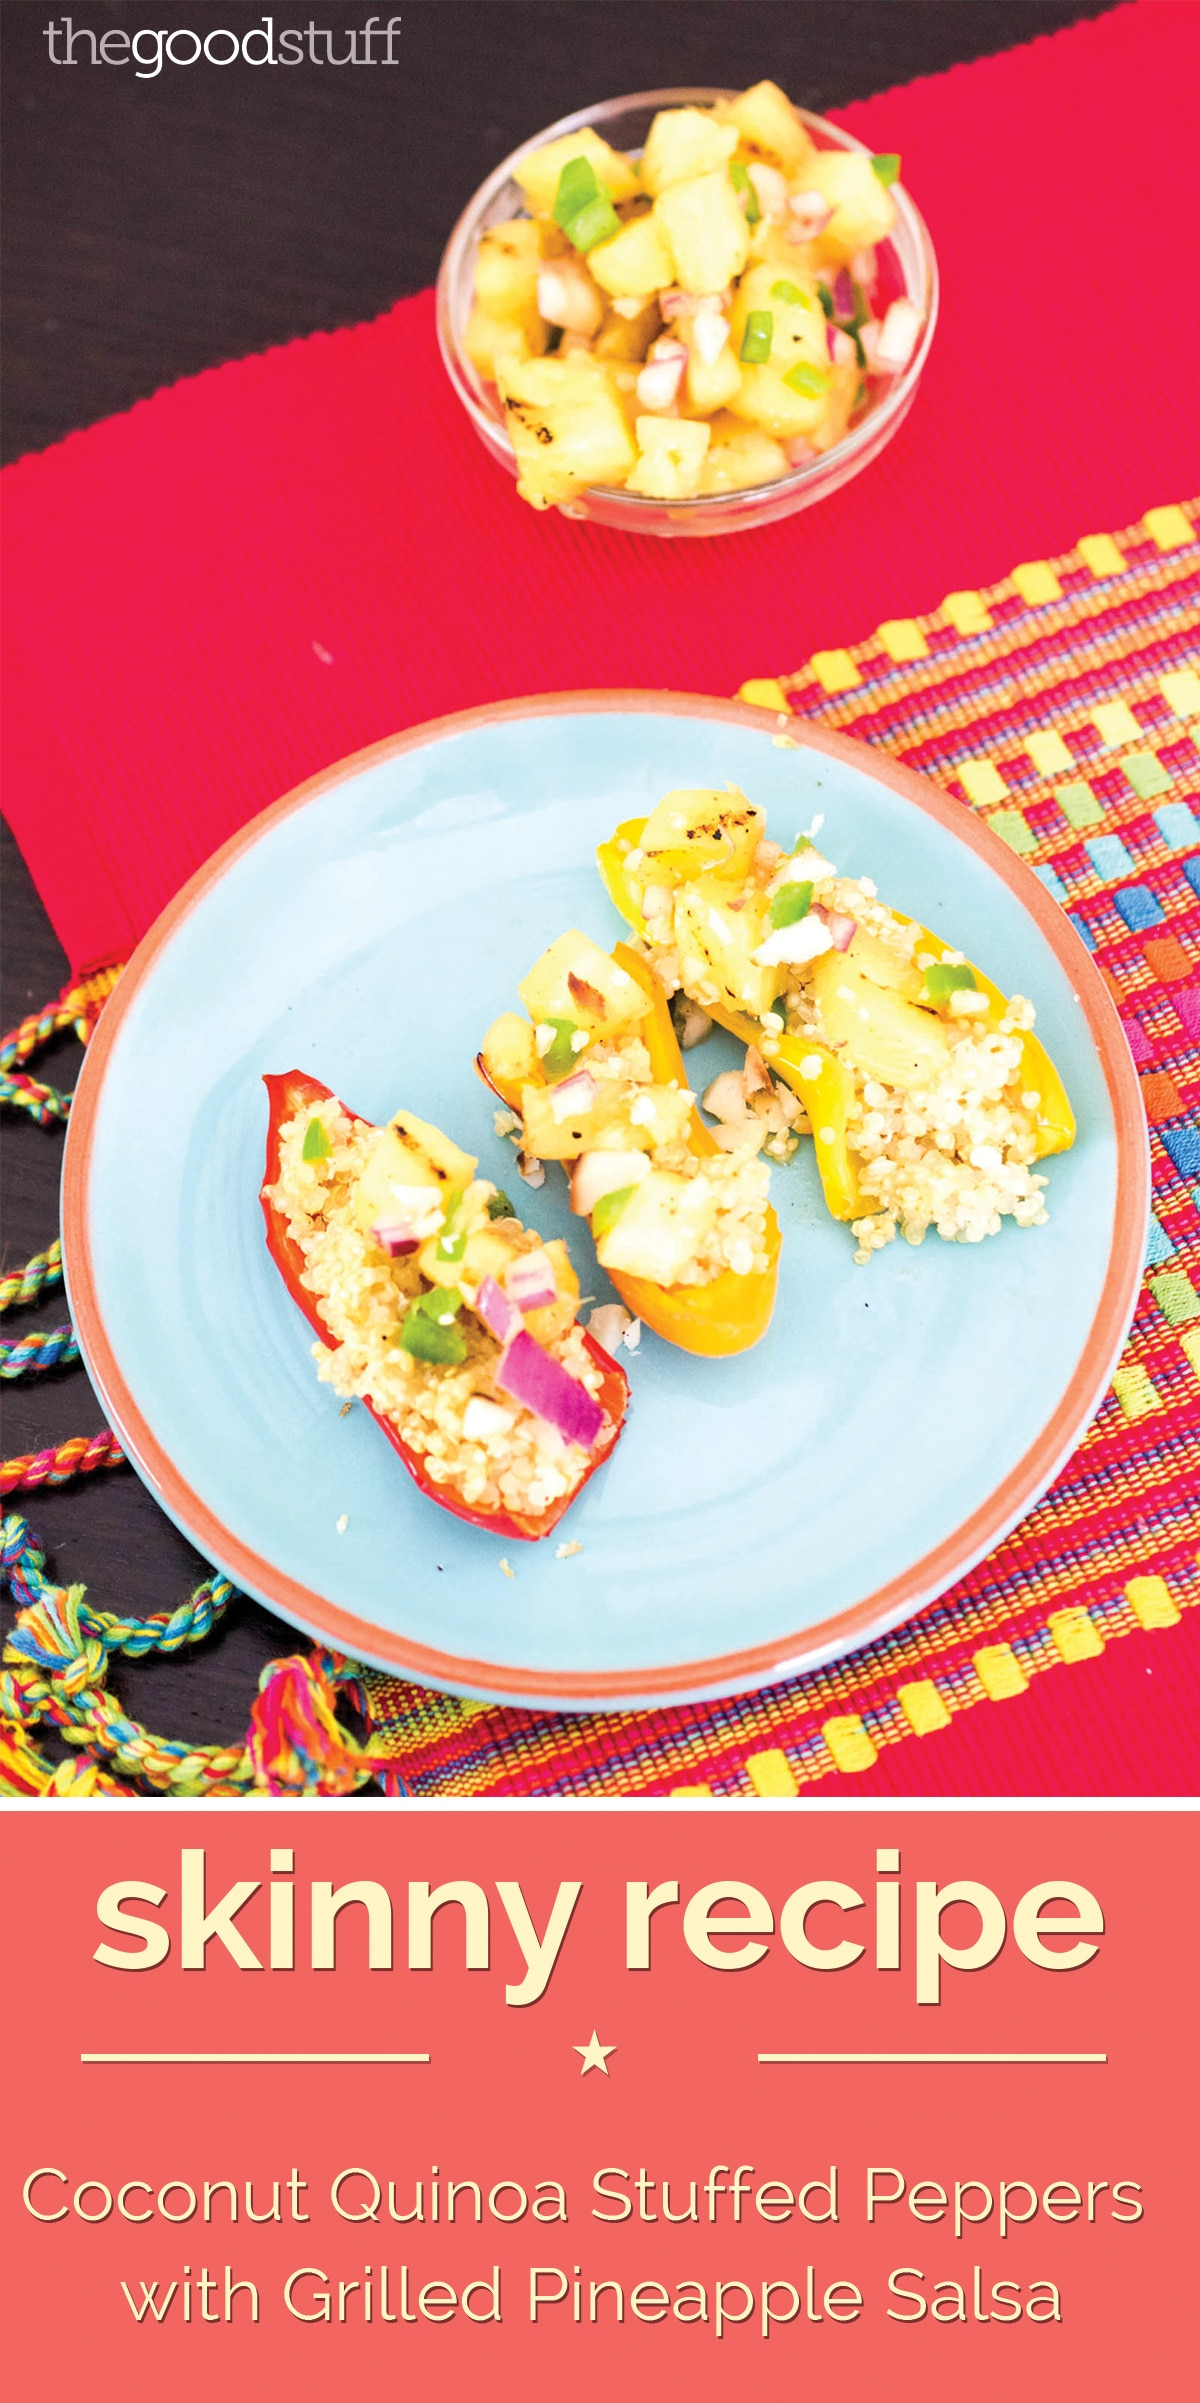 Skinny Recipe: Coconut Quinoa Stuffed Peppers with Grilled Pineapple Salsa | thegoodstuff